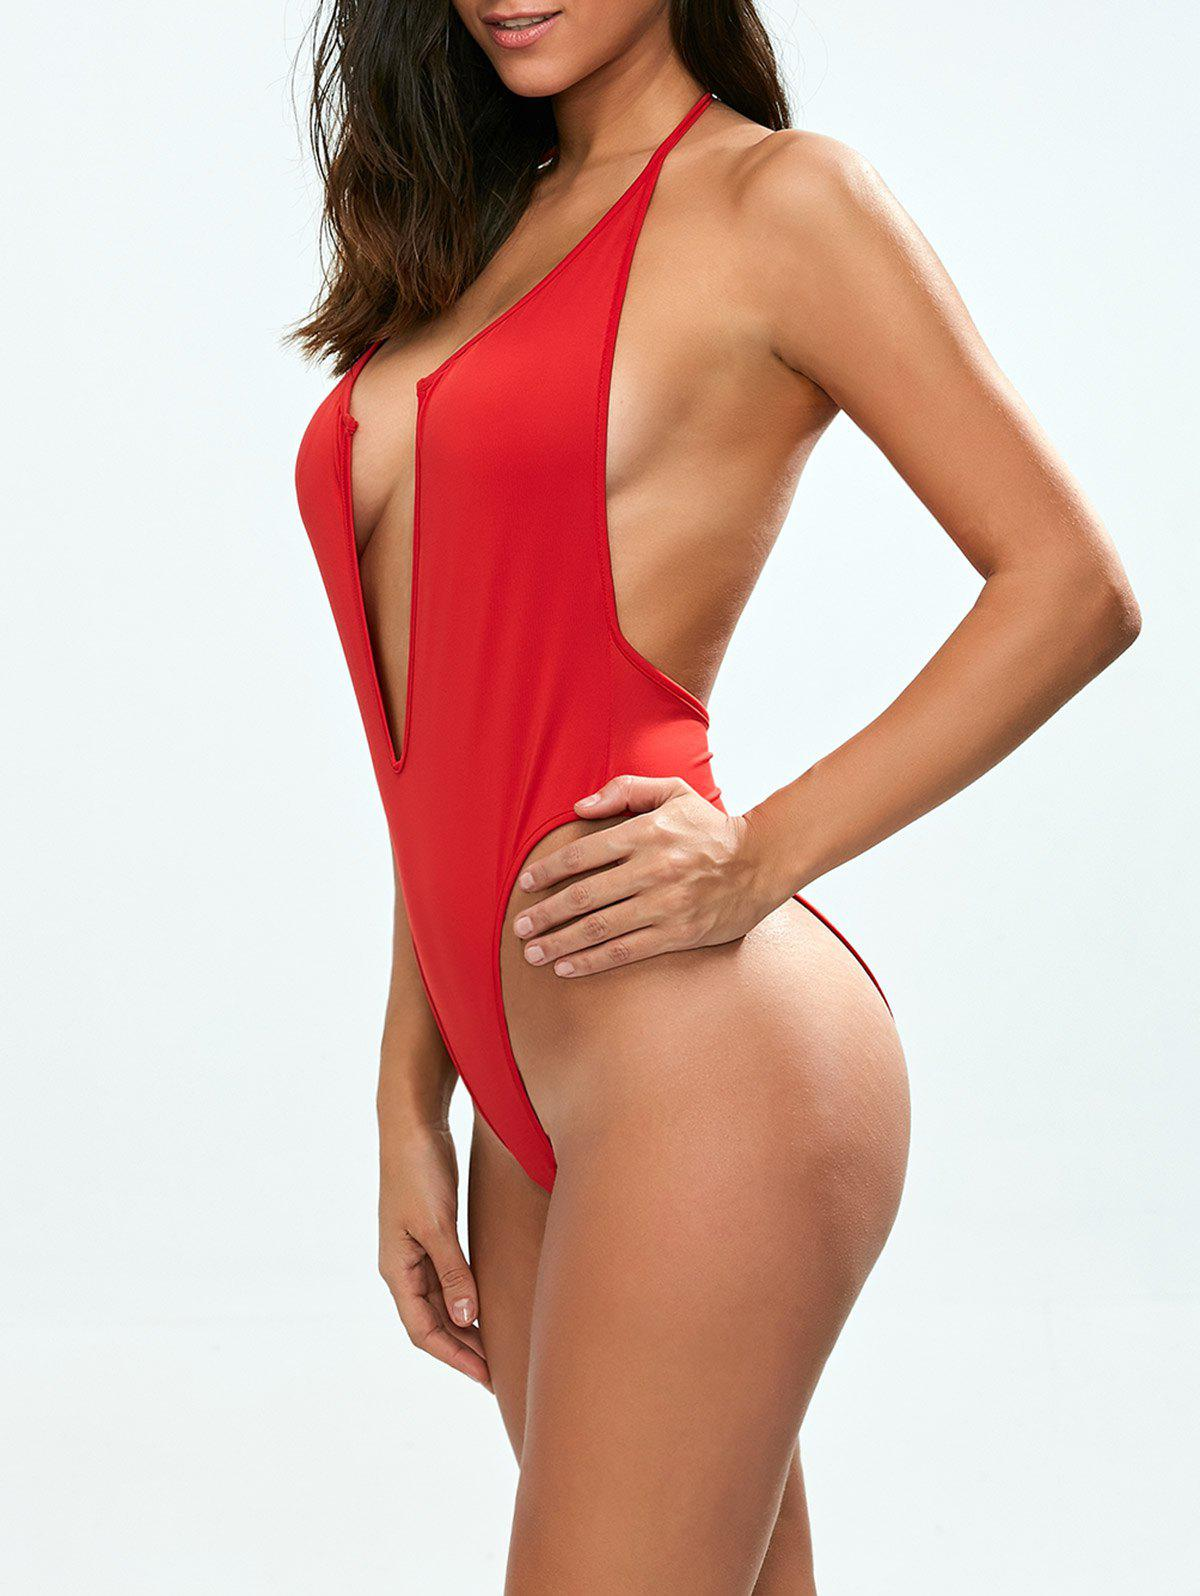 Backless Low Cut Halter One Piece Swimsuit - RED S